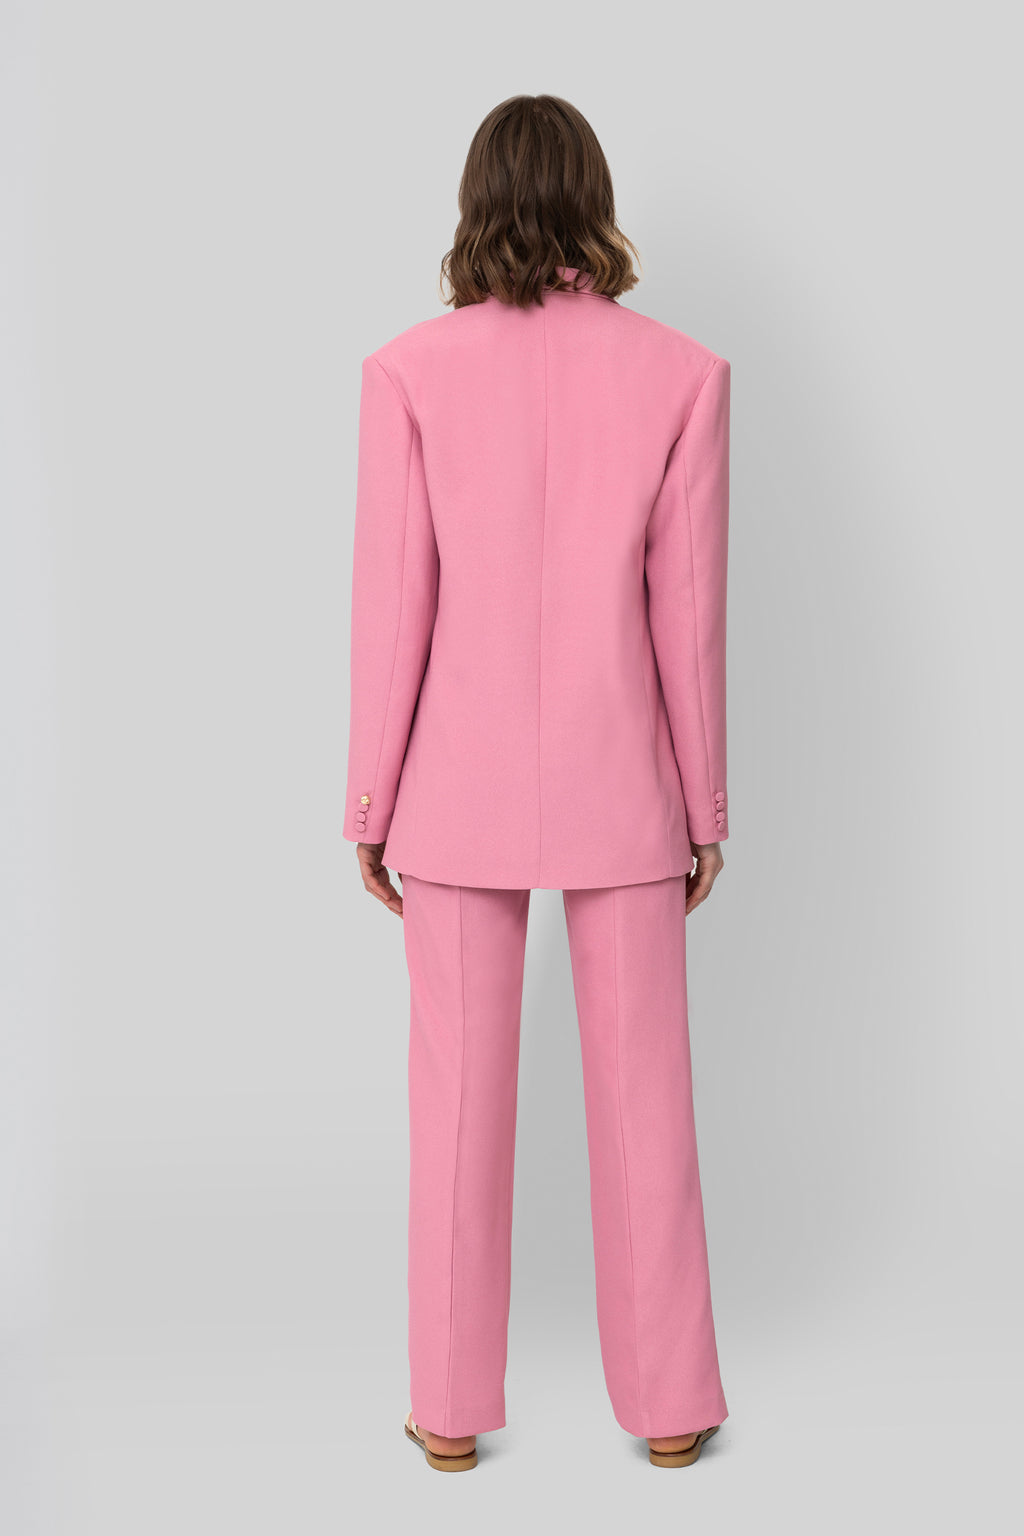 The Pink Lover Blazer